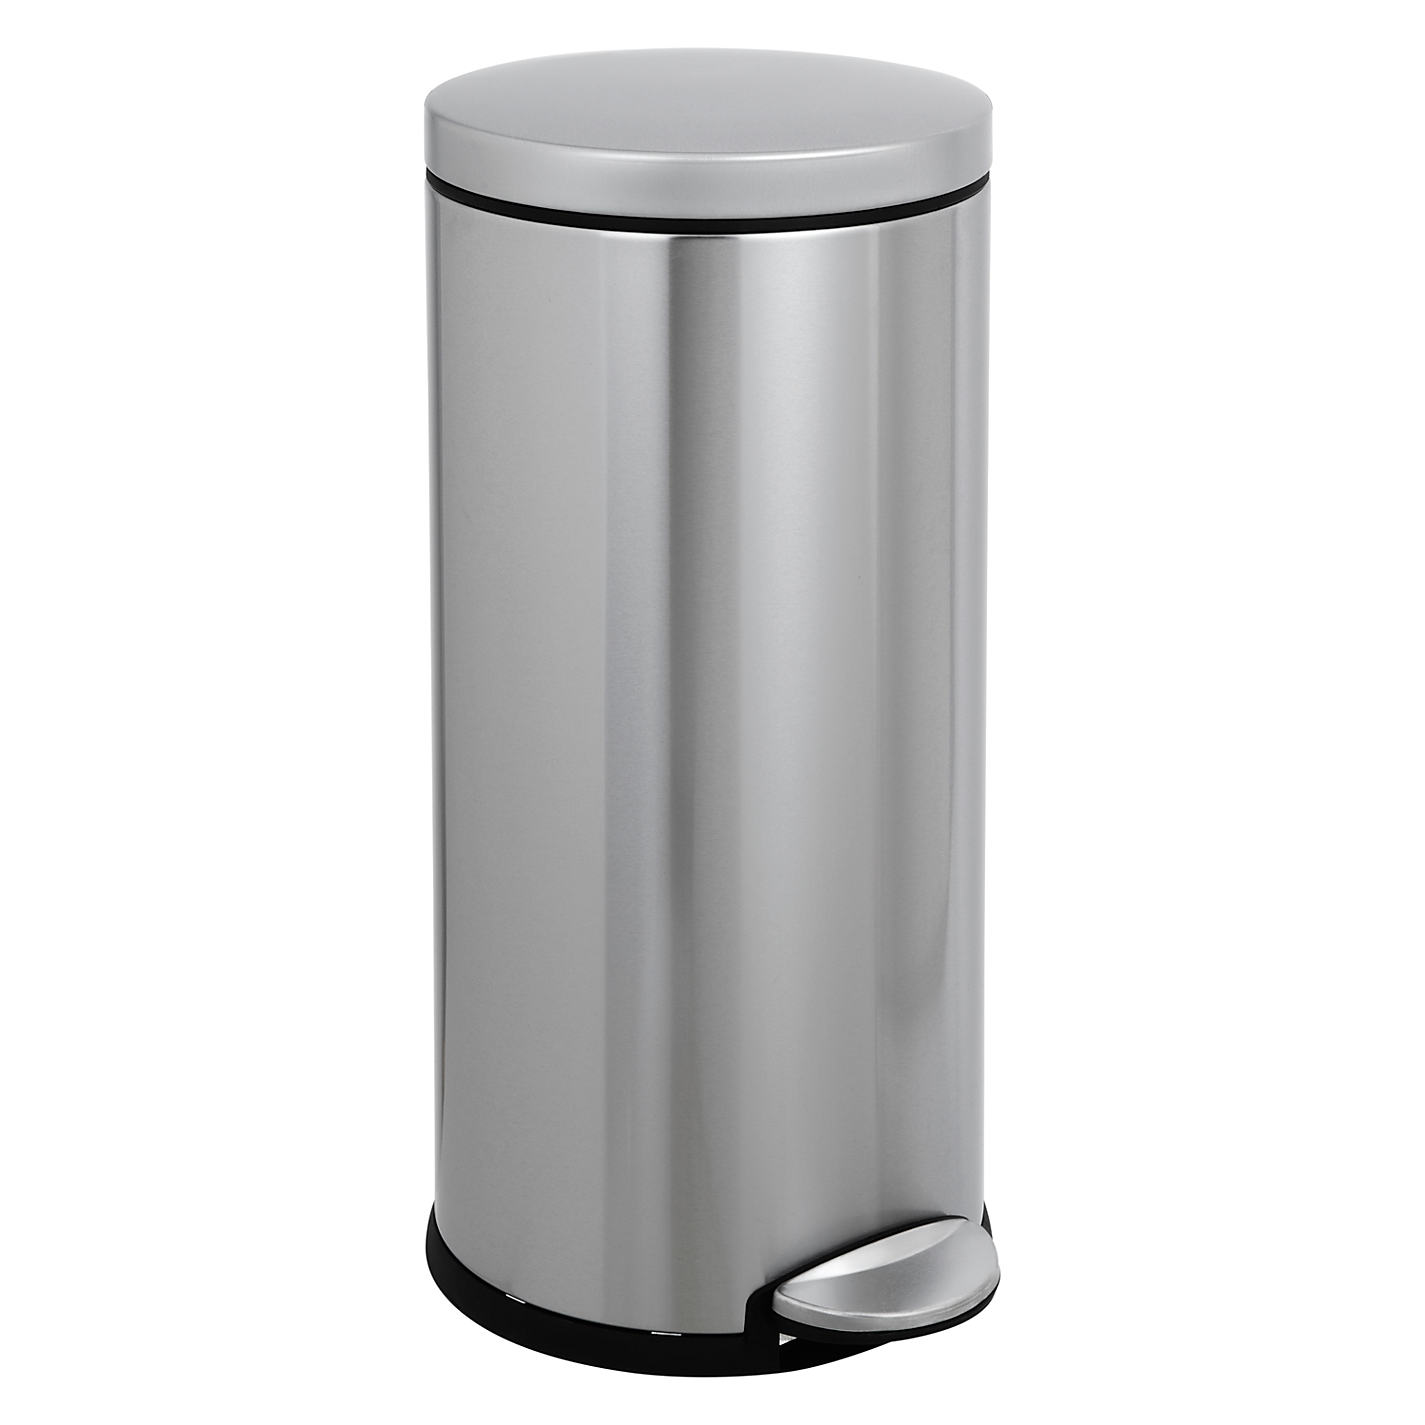 Buy simplehuman Round Pedal Bin Brushed Stainless Steel 30L Online at johnlewis com. Simplehuman Bathroom Bin